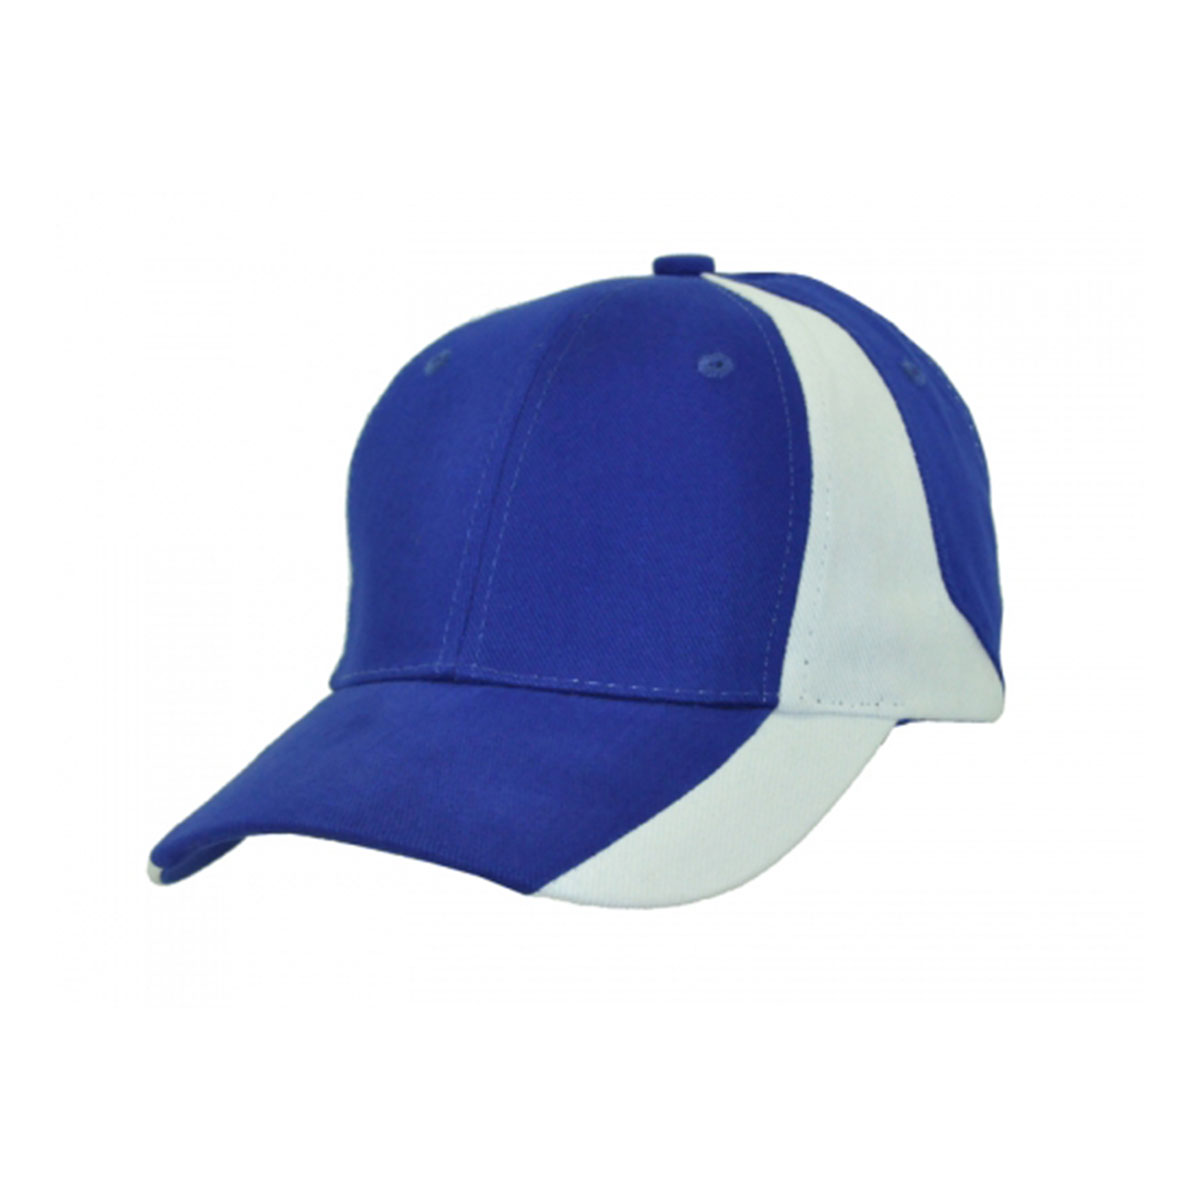 Vertek Cap-Royal / White